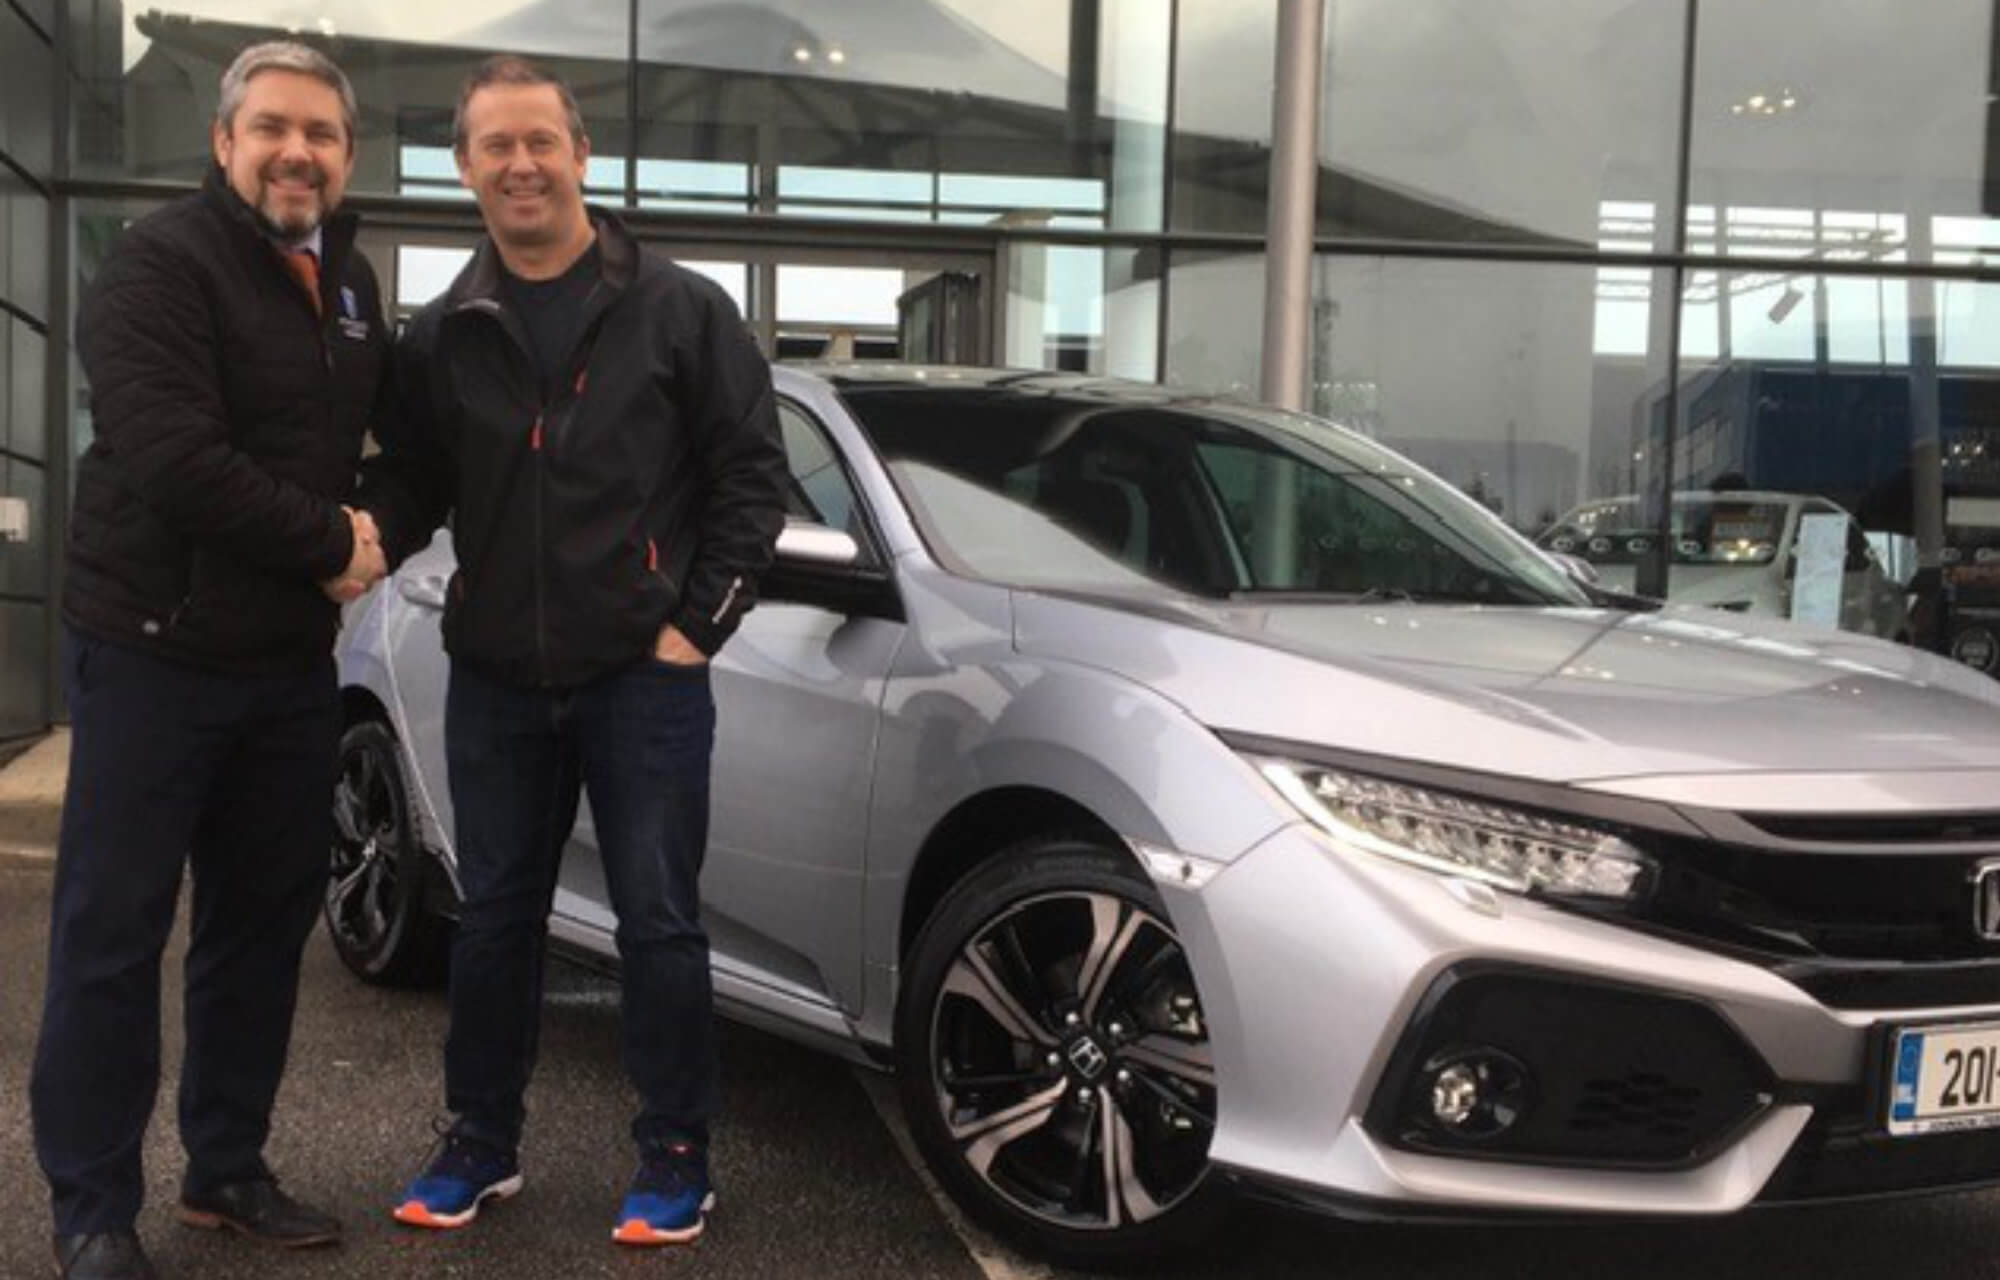 John Coomey collecting his new Honda Civic GT from Johnson & Perrott